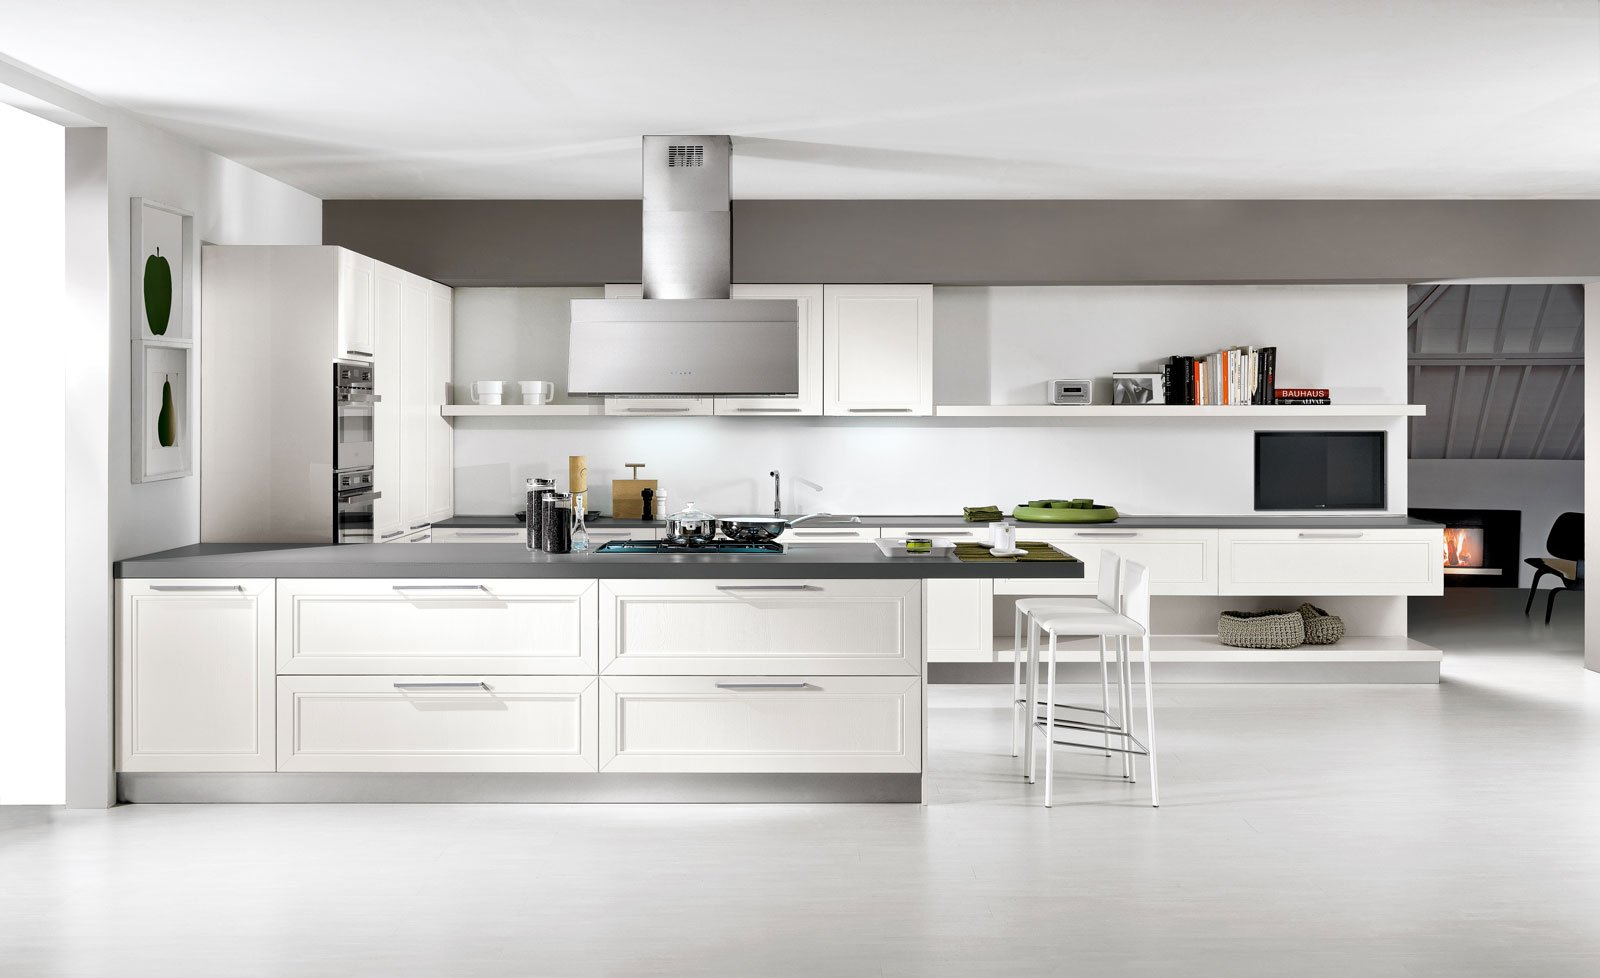 Best Cucina Moderna Prezzo Gallery - Skilifts.us - skilifts.us